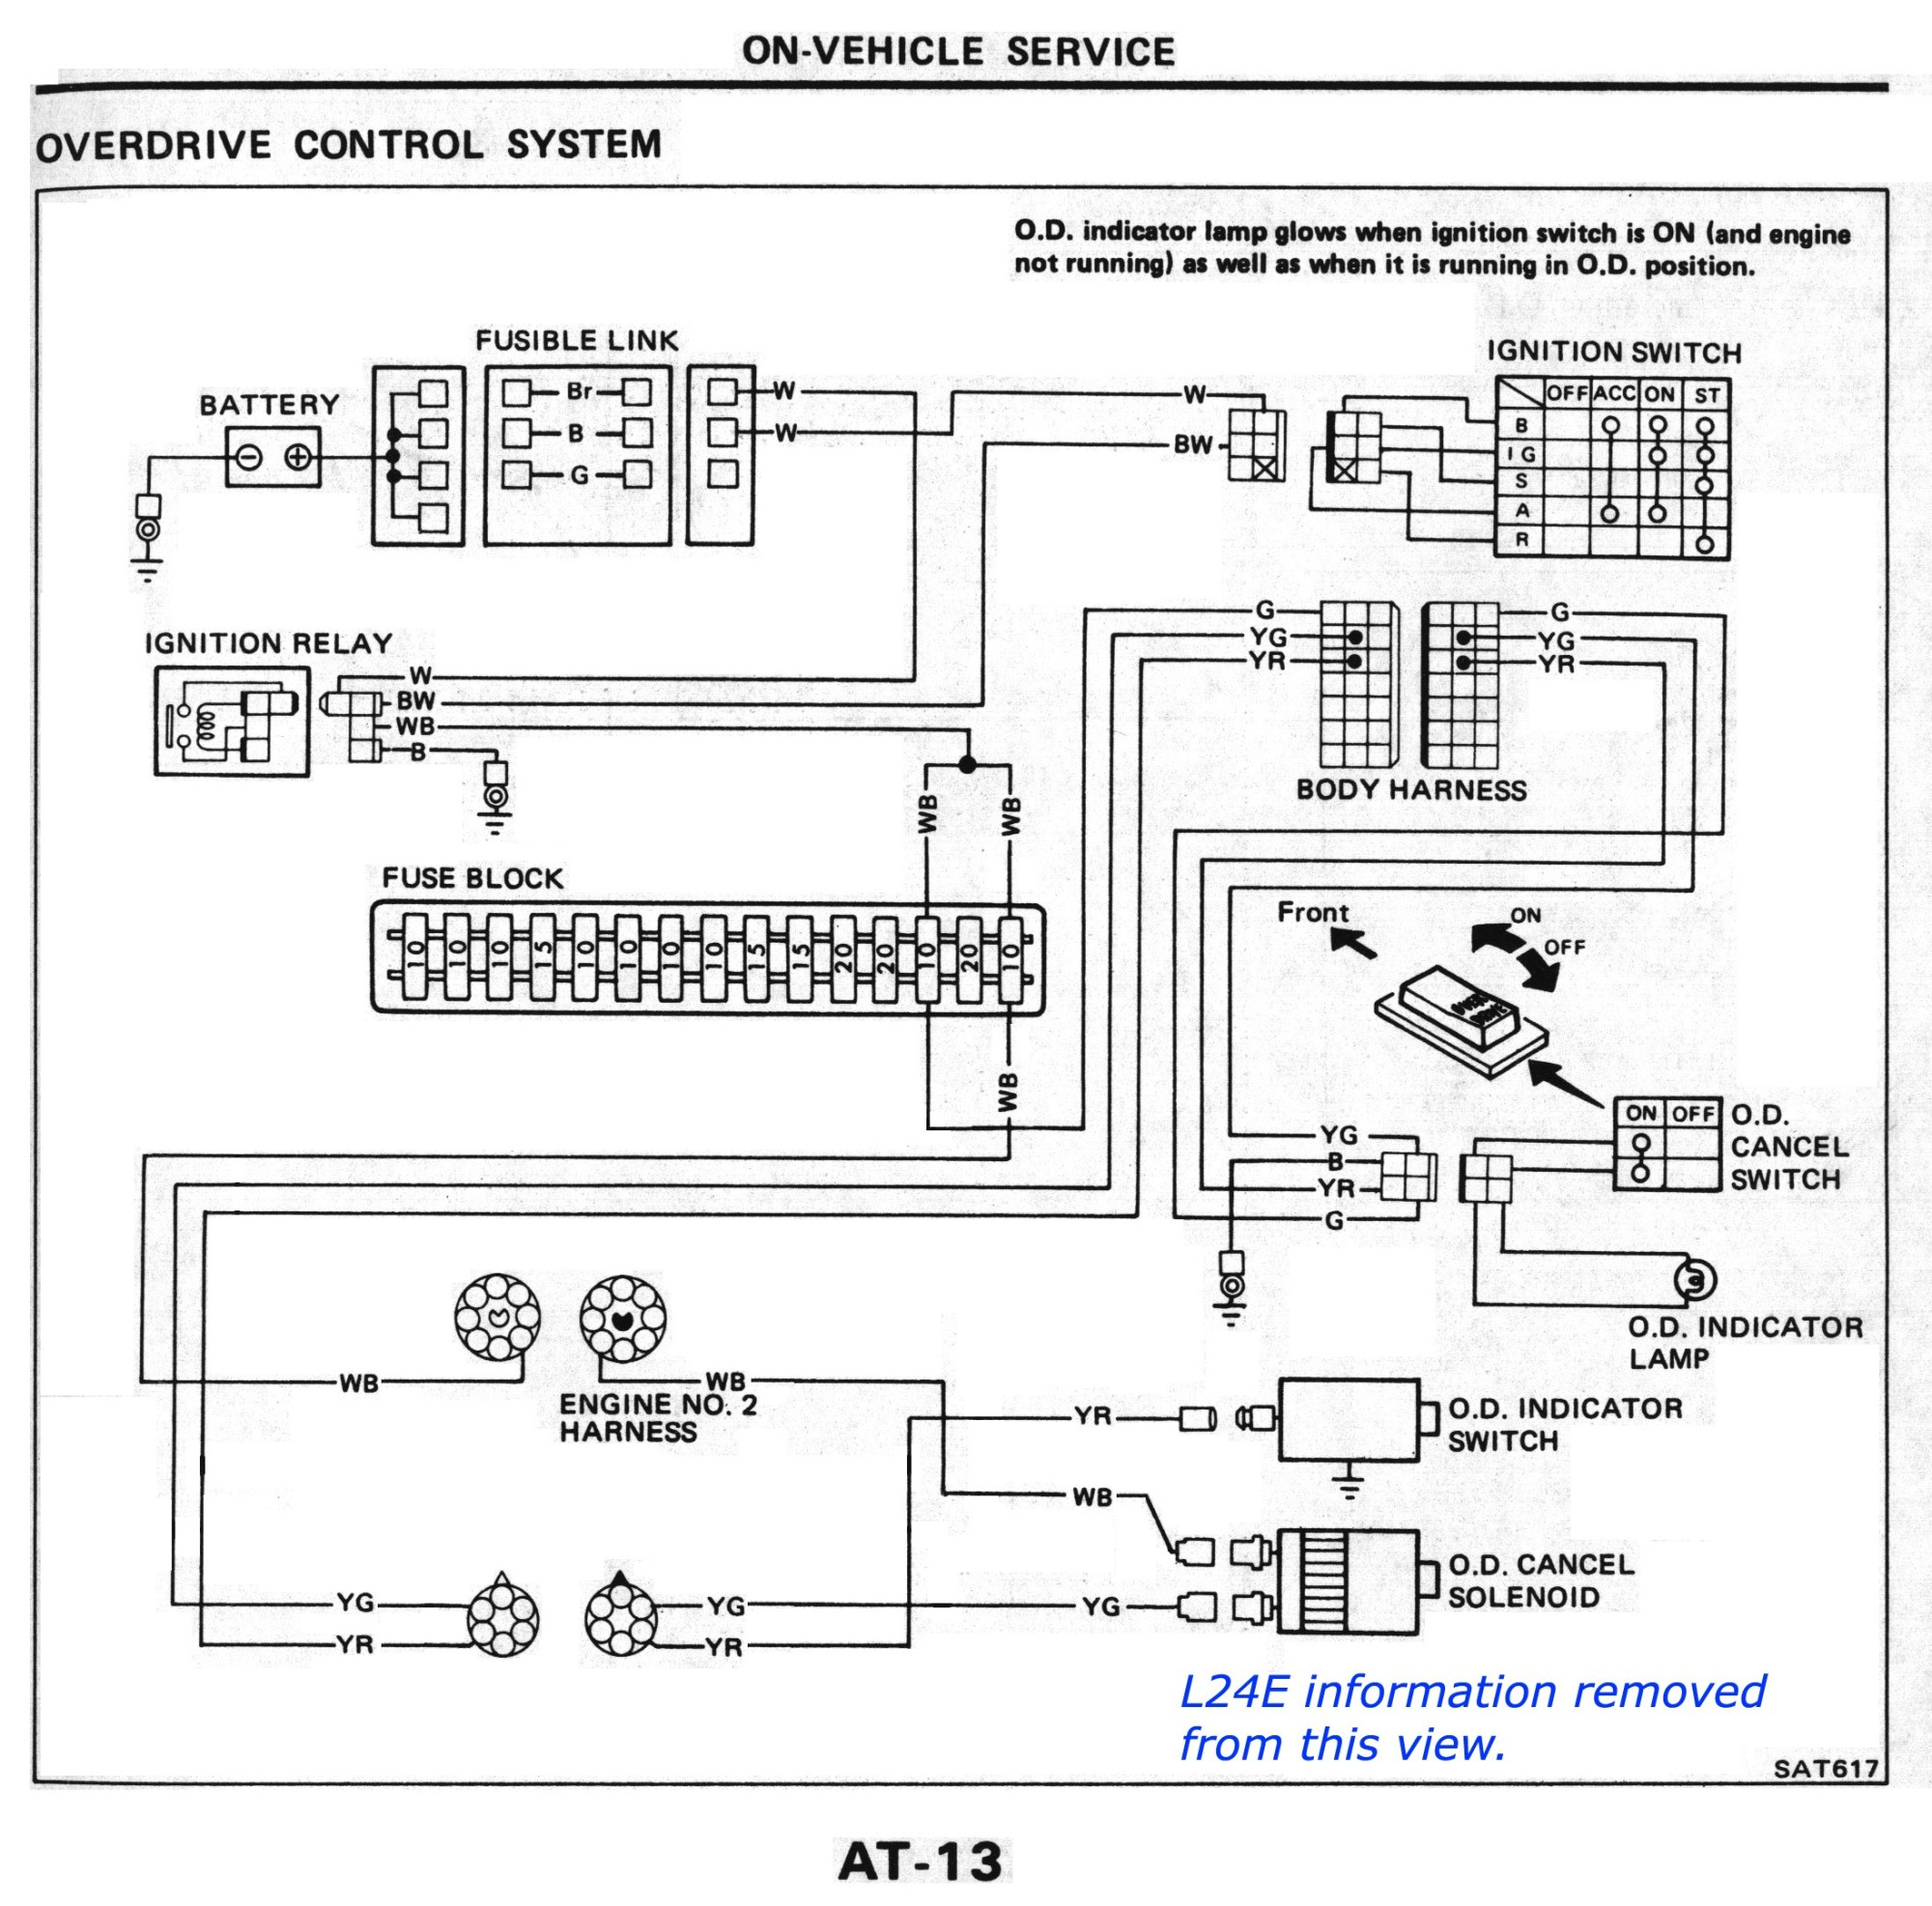 hight resolution of a4ld transmission wiring diagram 32 wiring diagram e40d wiring diagram ford a4ld exploded view